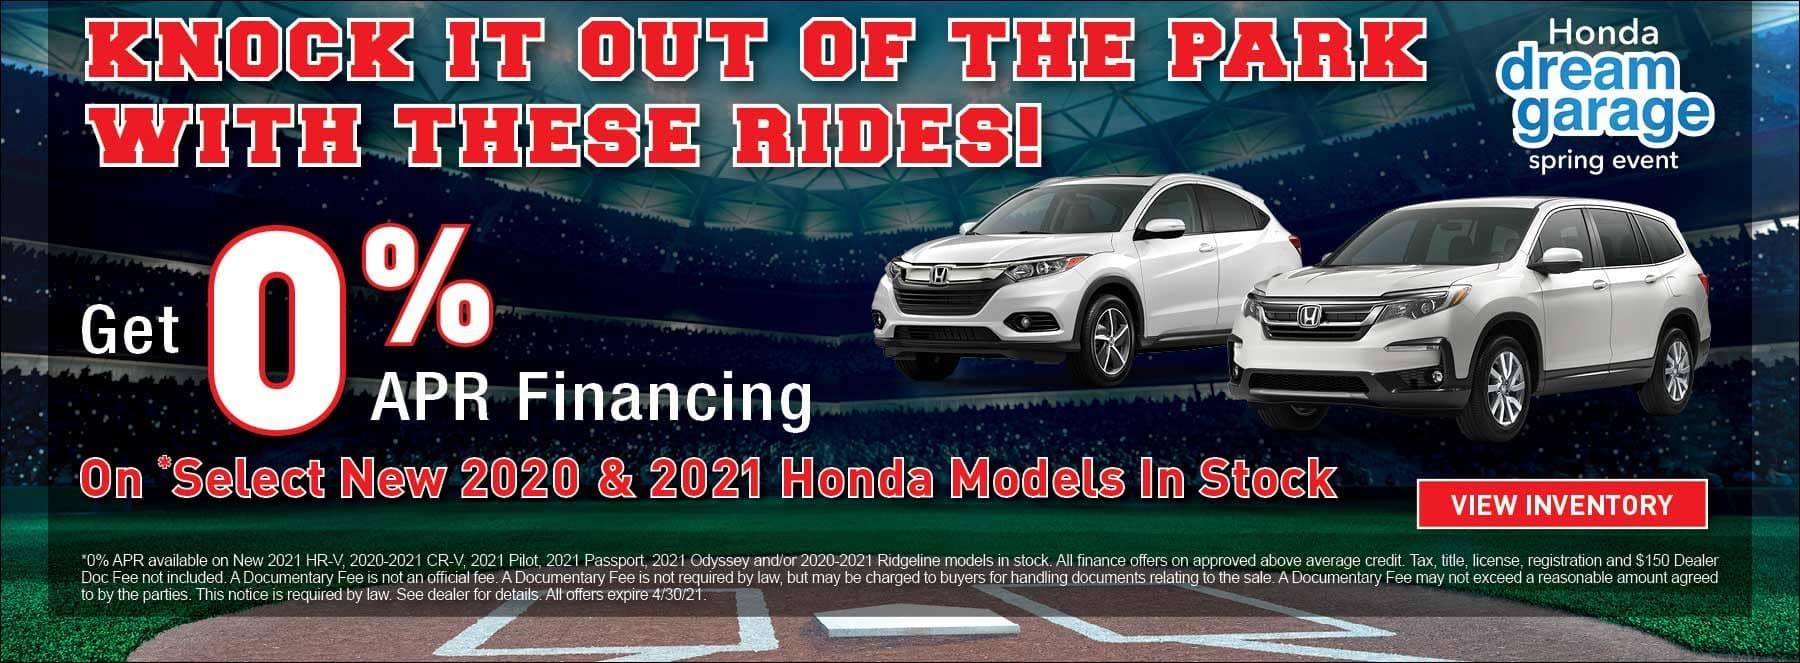 0% APR Financing on select new 2020 & 2021 Honda models in stock